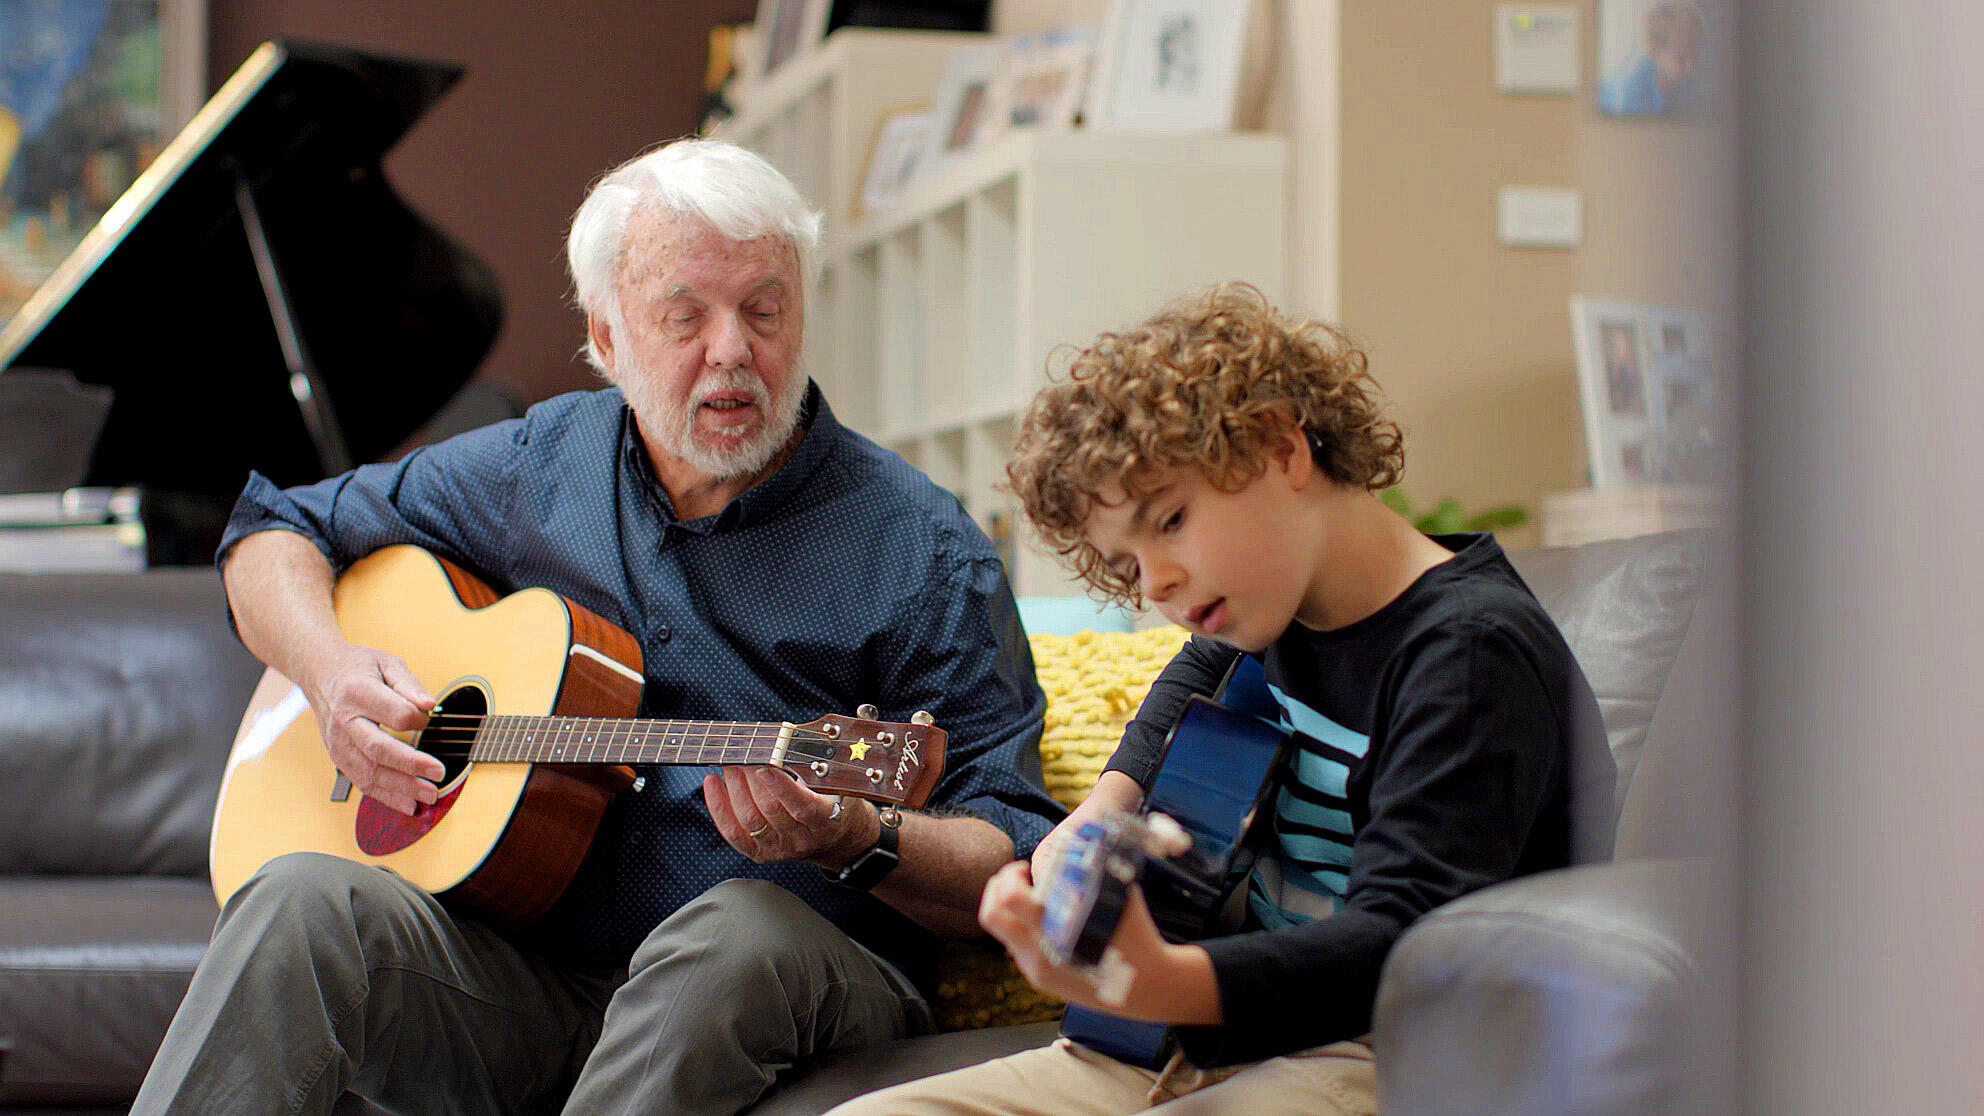 A man and a child wearing a Cochlear implant play acoustic guitars